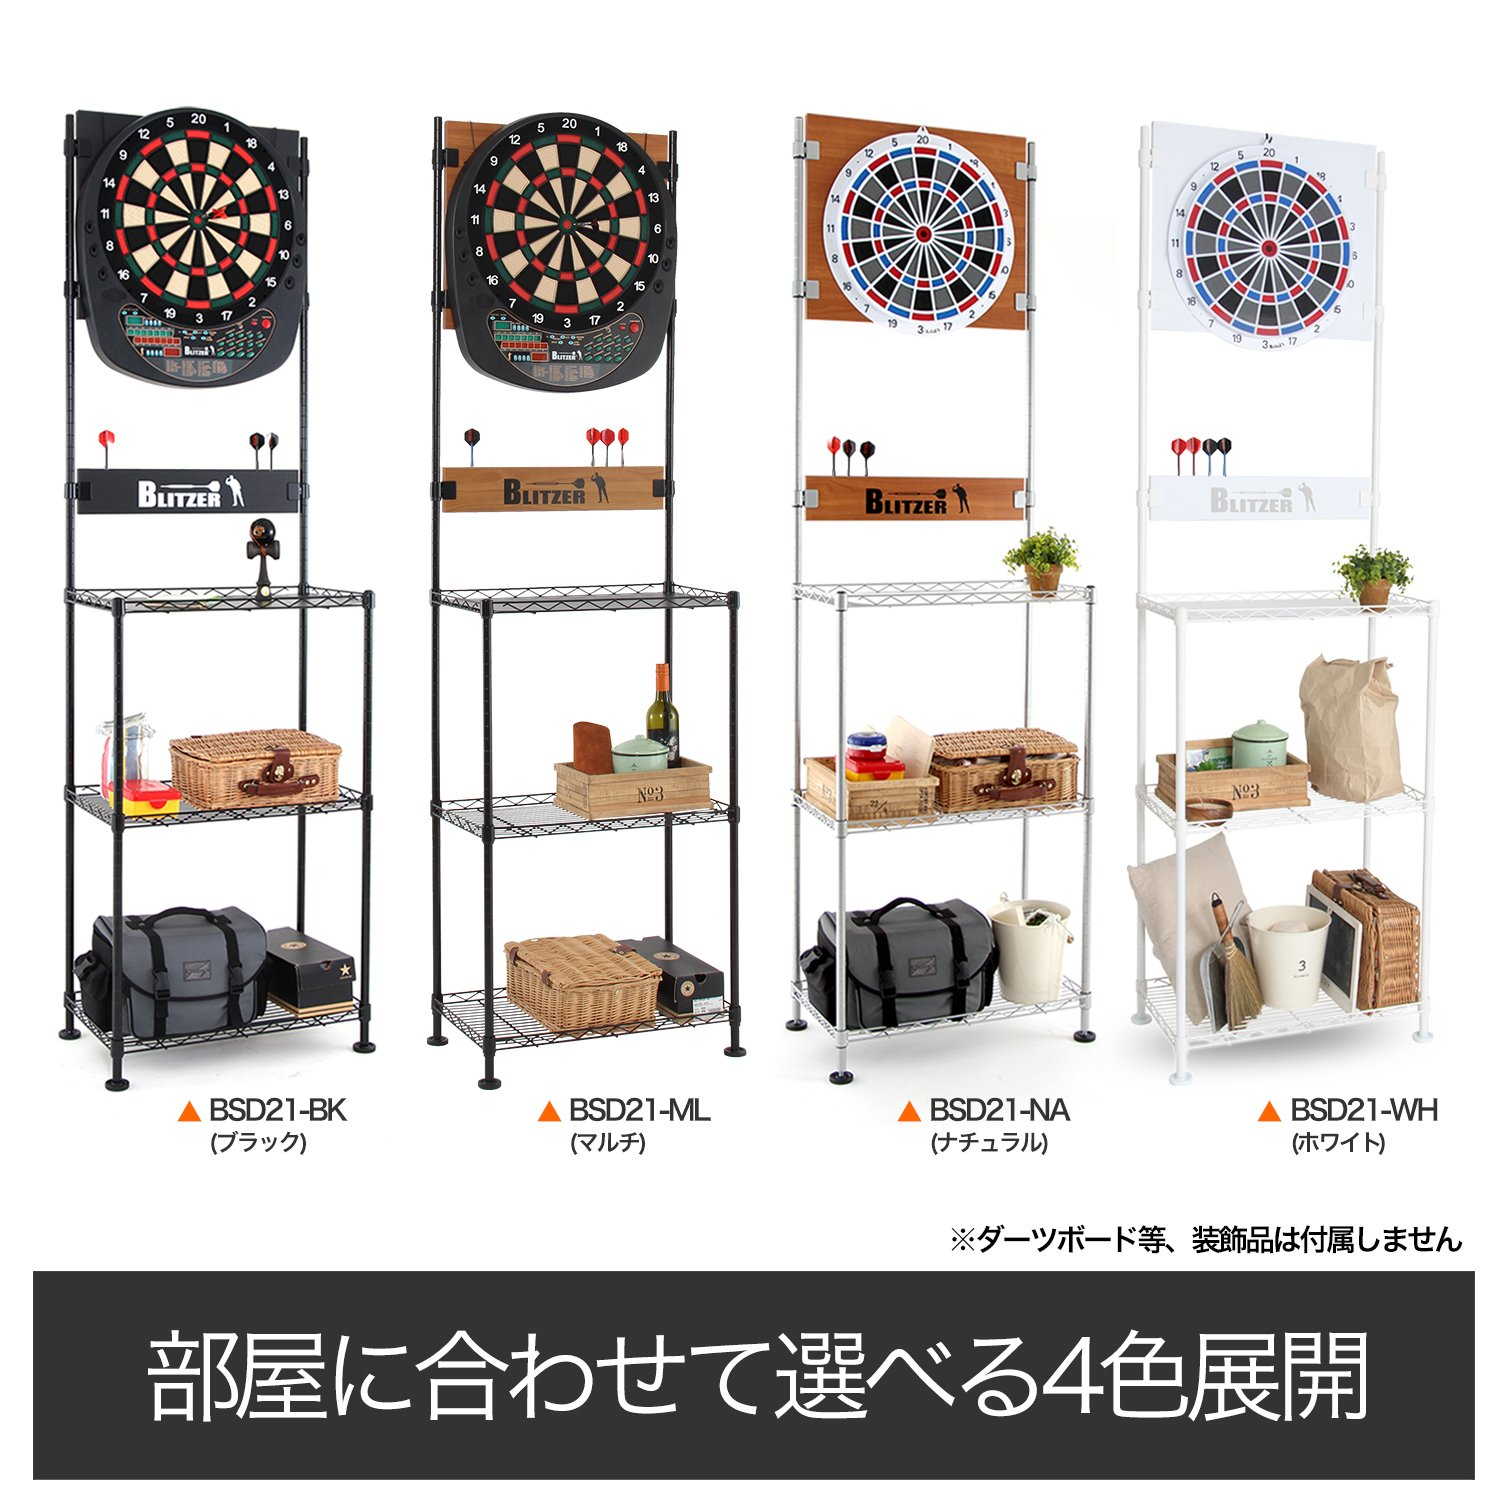 Amazon.com: Blitzer (burittuxa-) Darts Stand Steel Rack System and Easy to Assemble Rust Resistant Powder Coated Freestanding Stable Large Adjuster (pair) ...